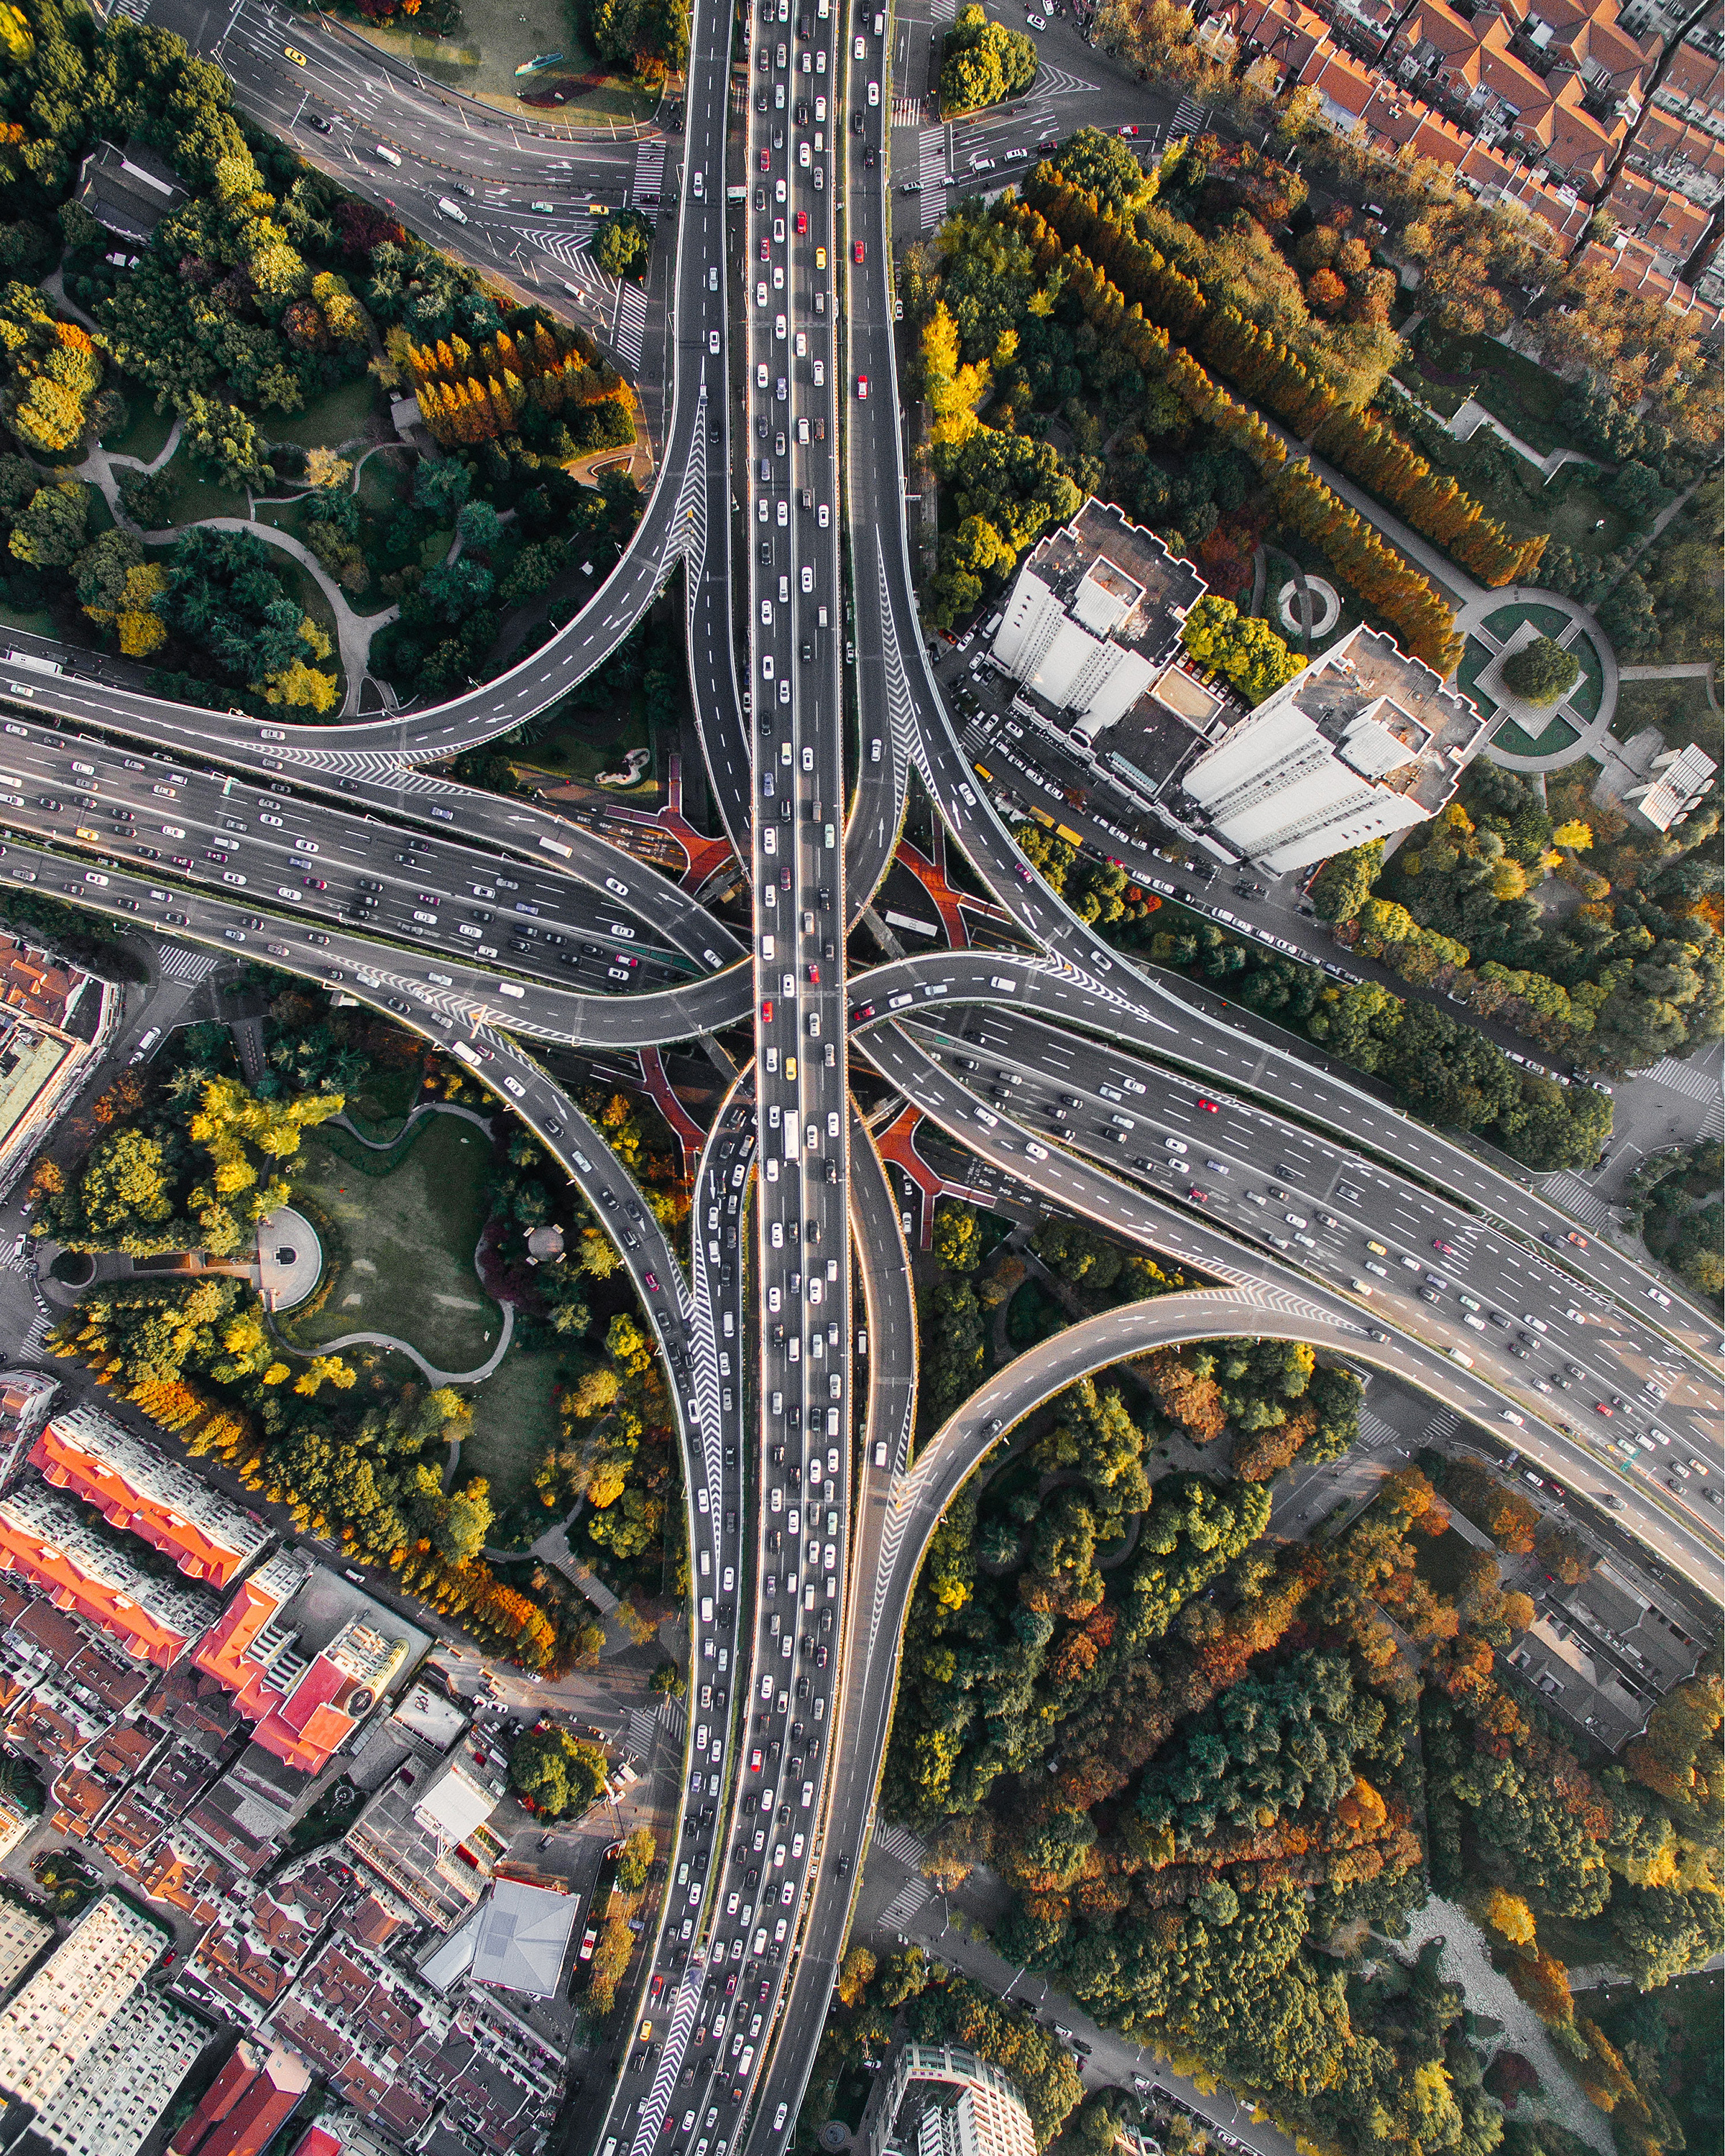 "The Puxi Viaduct in Shanghai, China, is one of the largest and busiest interchanges in the world. Its five levels of bridges connect two of the city's busiest highways, Nanbei Road and Yan'an Road, allowing thousands of vehicles to pass through every hour.  31°13'34.6""N, 121°27'52.5""E  Source imagery: Denys Nevozhai"